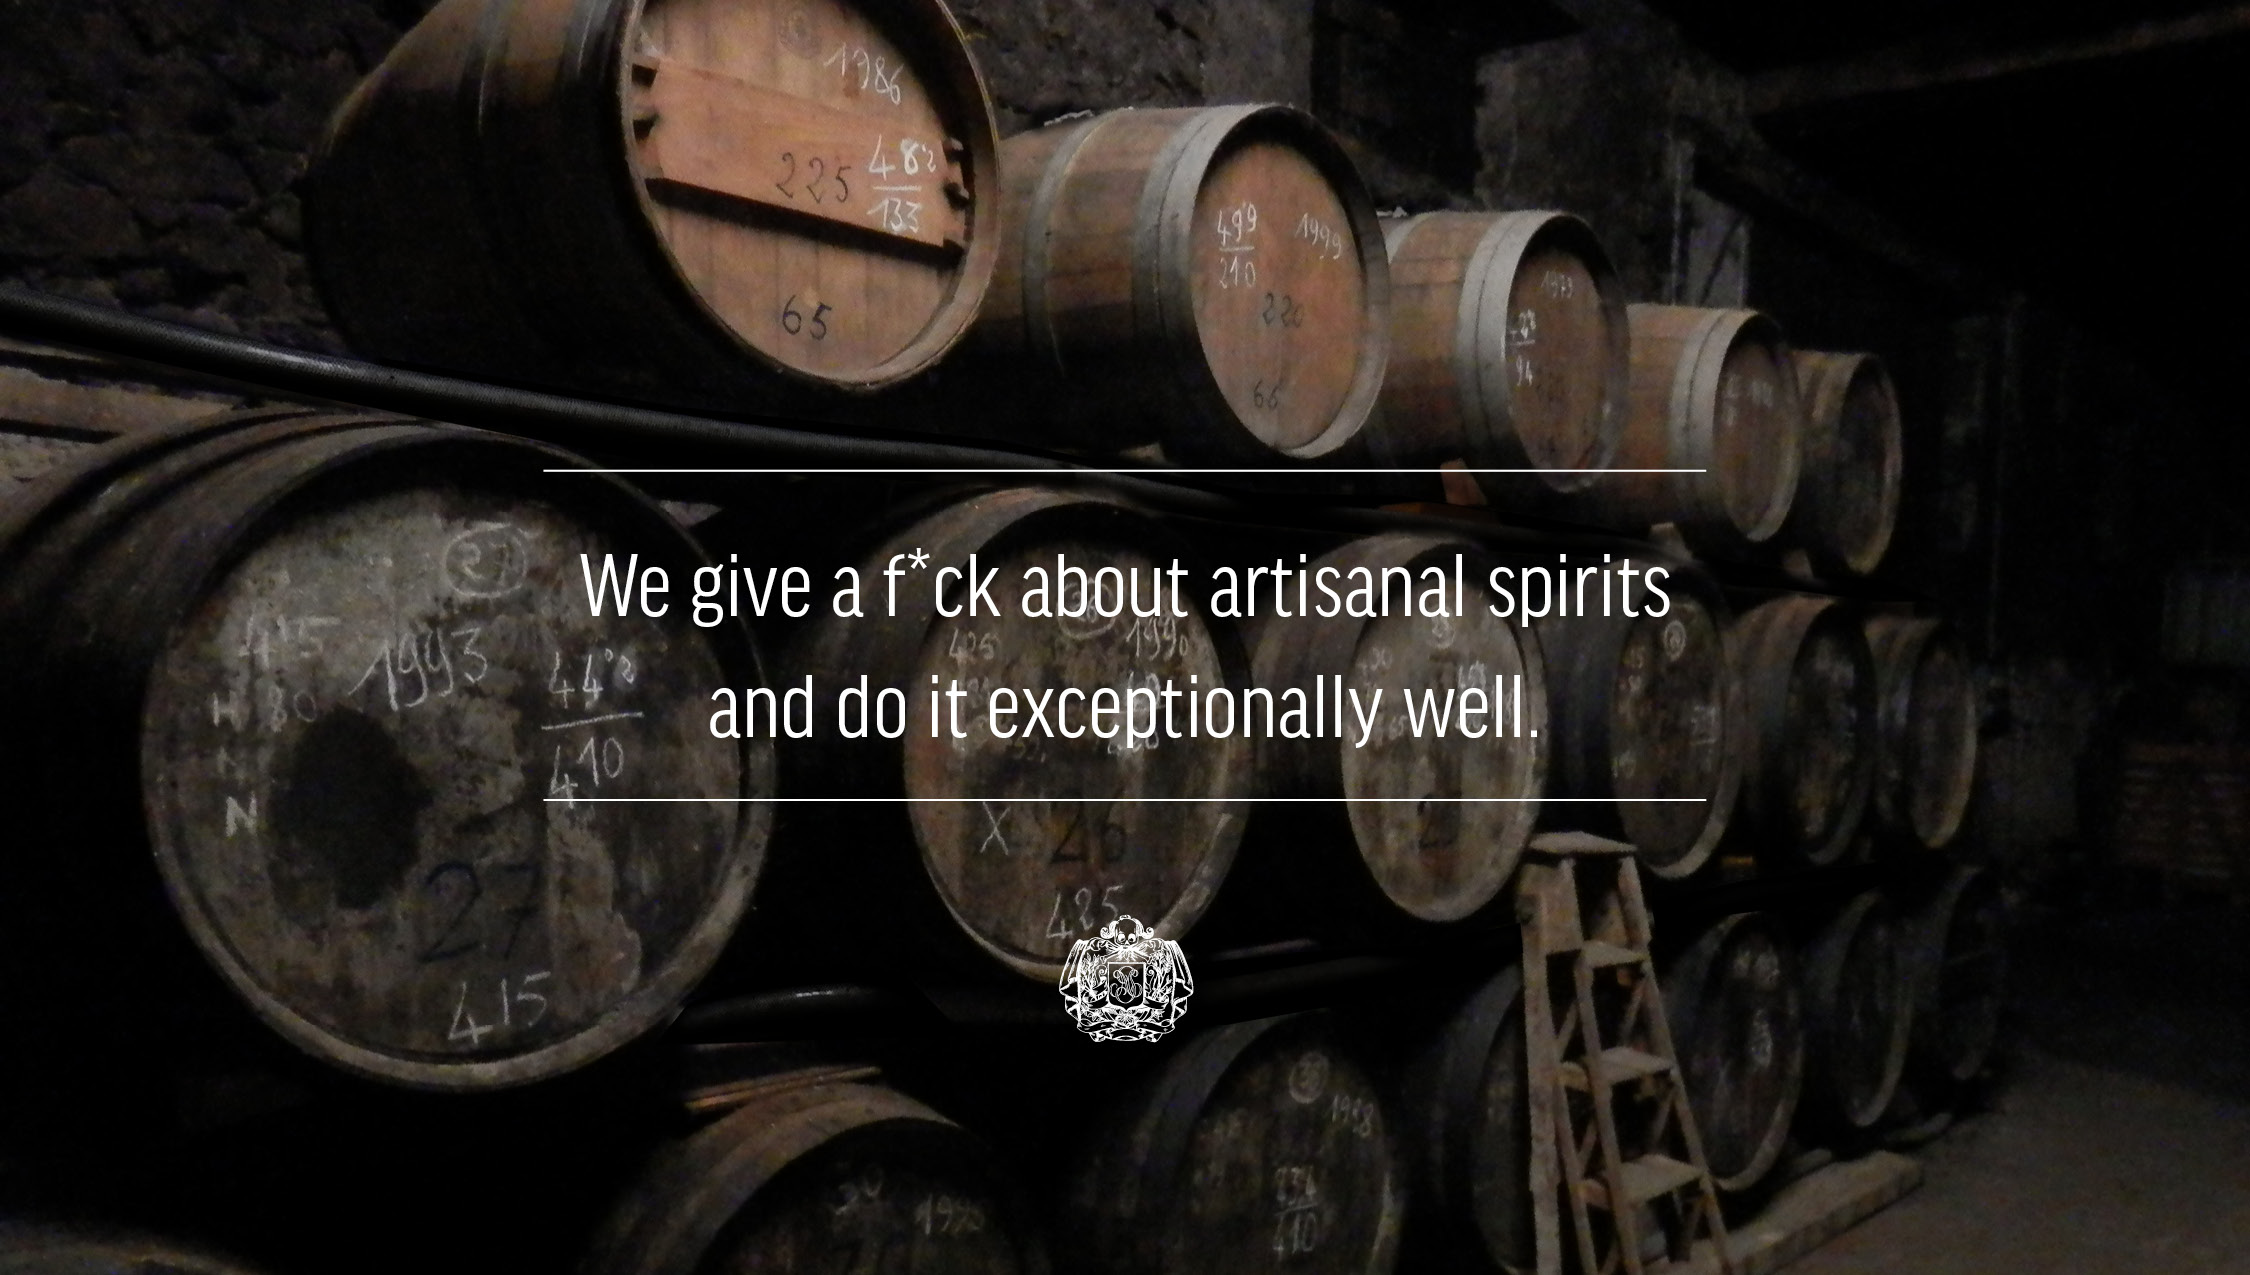 We believe in challenging the status quo of an often boring spirits industry. We believe in drinking differently. We represent real distillates which express a distinct personality. Each of our spirits is made by real people who care about their craft & respect the terroir.  The PM team believes in bringing passion, true knowledge and hustle to a very branded, blah industry. Our portfolio reflects our beliefs: it is curated and made exclusively of the very best distillates.  We give a f*ck about artisanal spirits and do it exceptionally well.